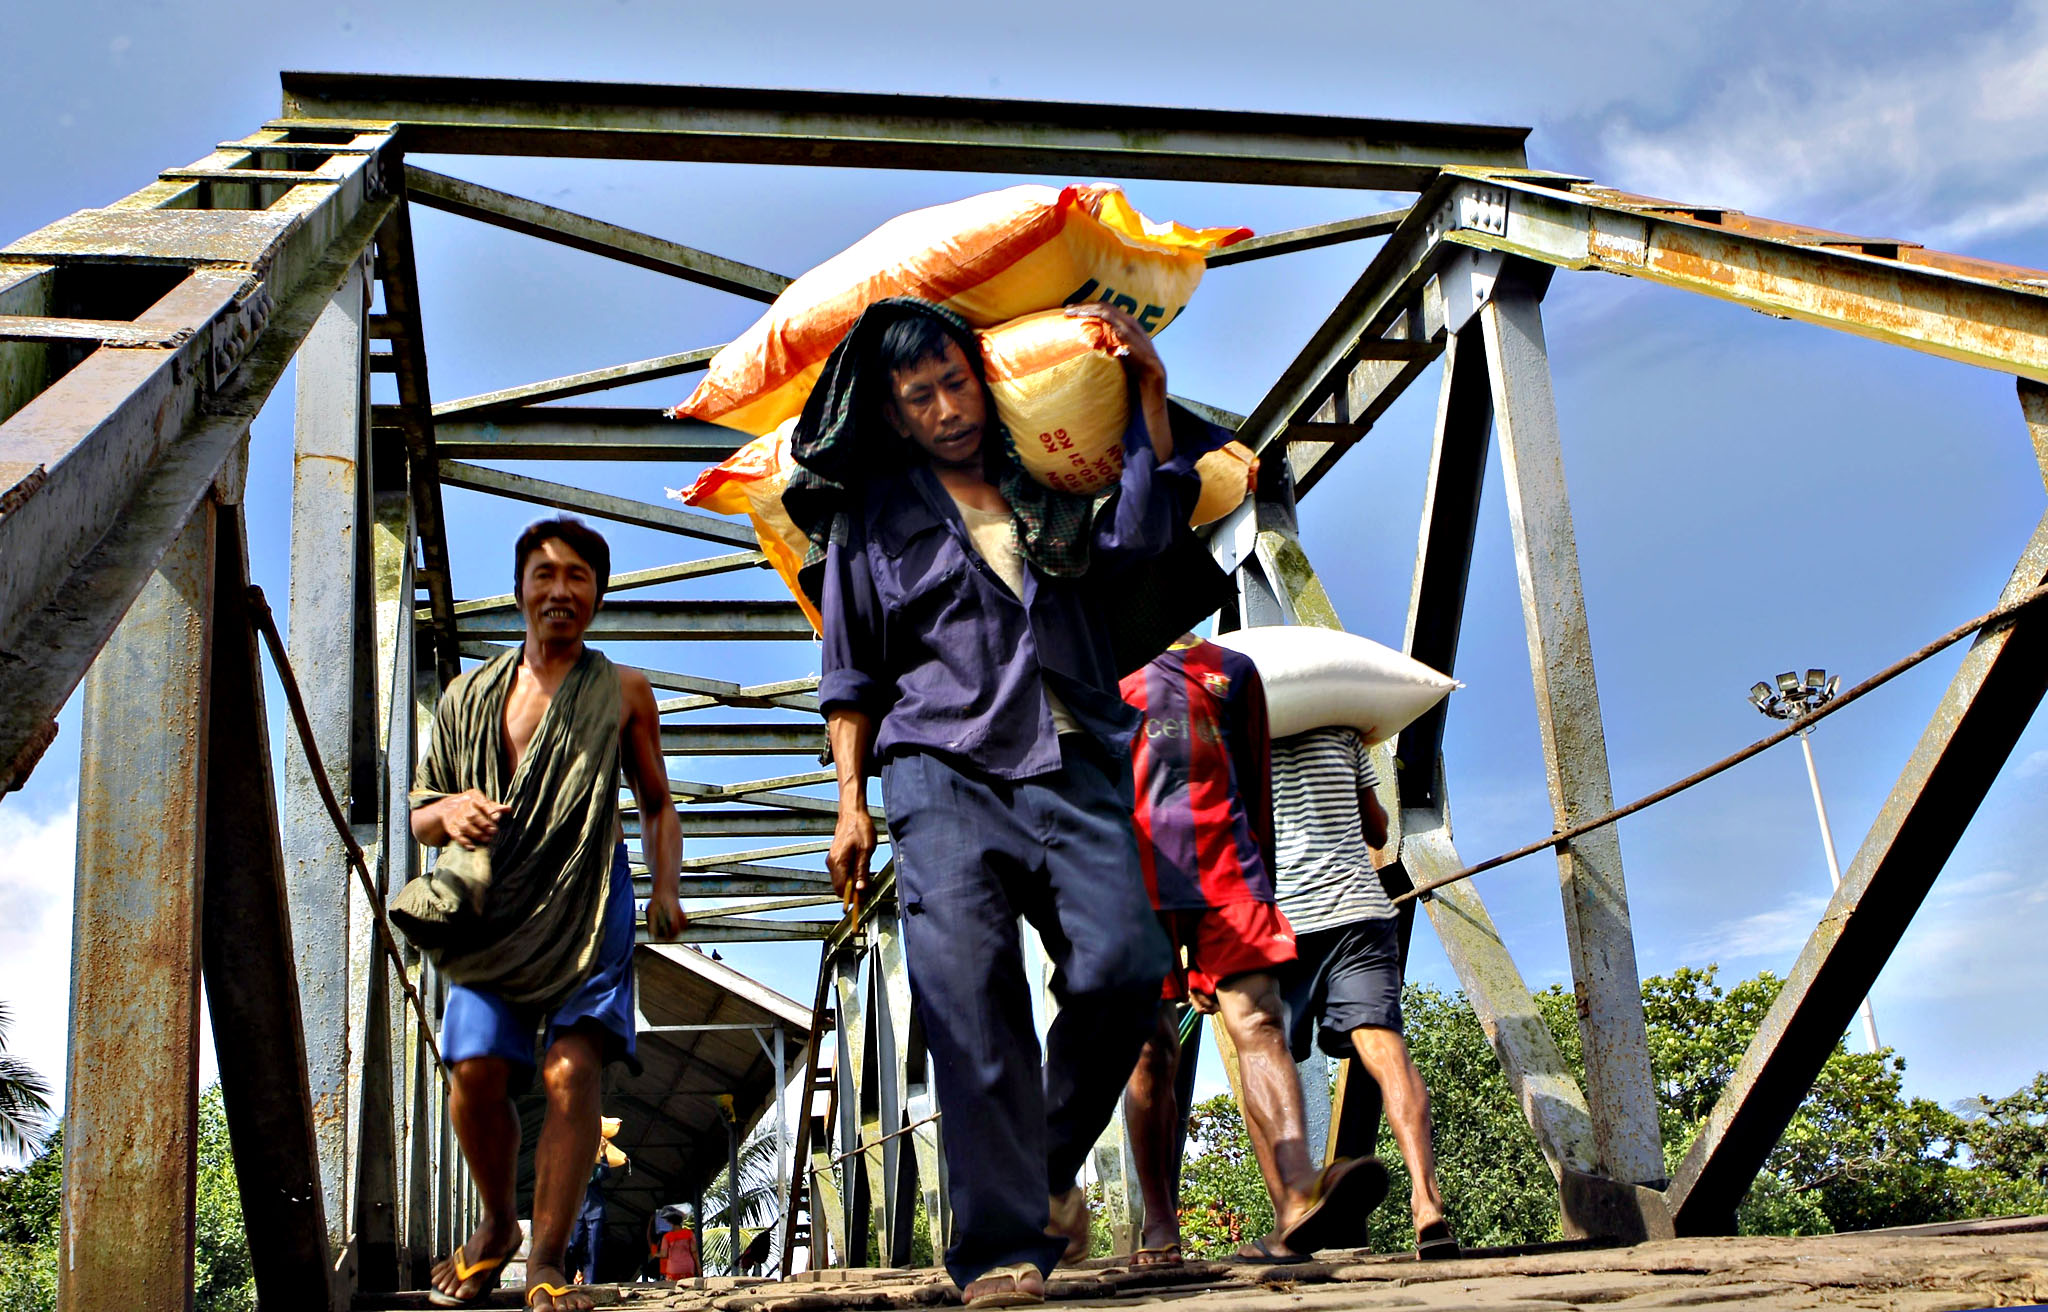 Myanmar worker carries rice bags on his shoulder at a jetty near Yangon river, Yangon, Myanmar, 03 September 2015. Myanmar Rice Federation (MRF) official told media that Myanmar would resume rice export on mid-september which has halted since the first week of August after mooson heavy rain and floods hit around the nation. MRF said this year rice export is expected less than 1.5 millon tons despide the government firstly expected about 2 million tons of this fical year as about 400.000 hectares of rice fields were expected to be damaged by floods